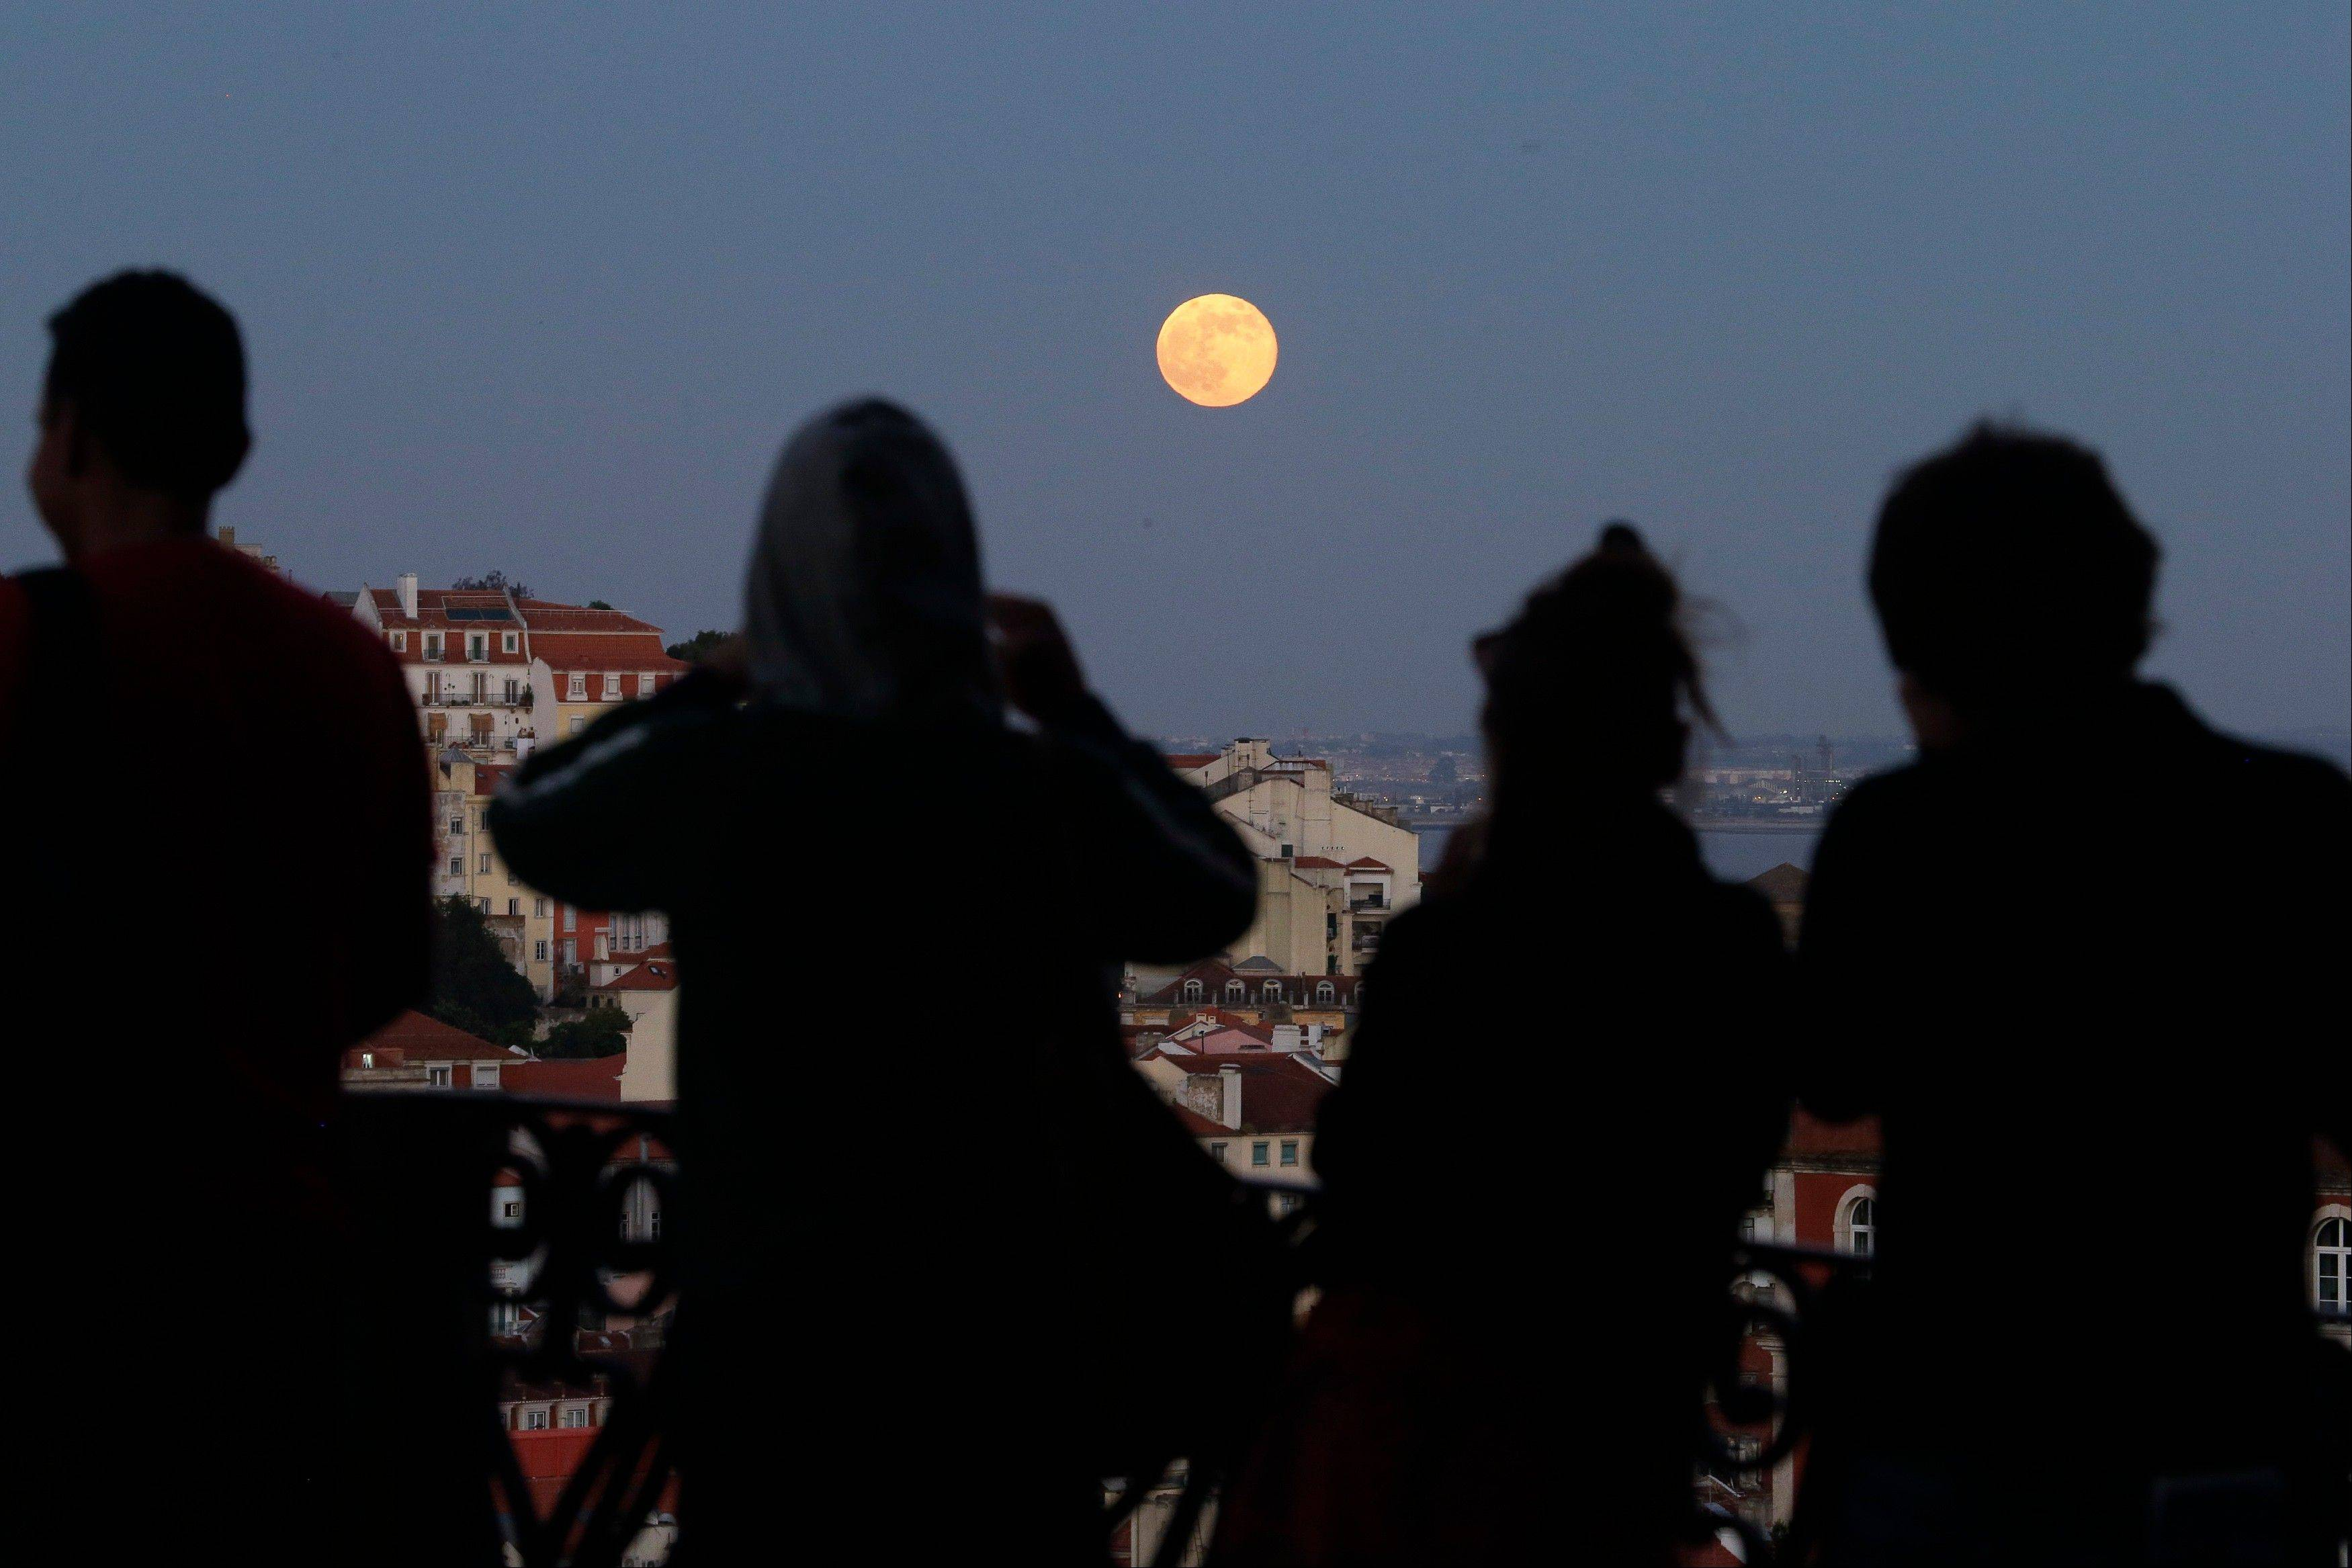 People look at the biggest and brightest full moon of the year rise at a public garden in Lisbon, Portugal Sunday, June 23 2013. The so-called supermoon appeared up to 14 percent larger than normal as it swung closer to Earth Sunday.